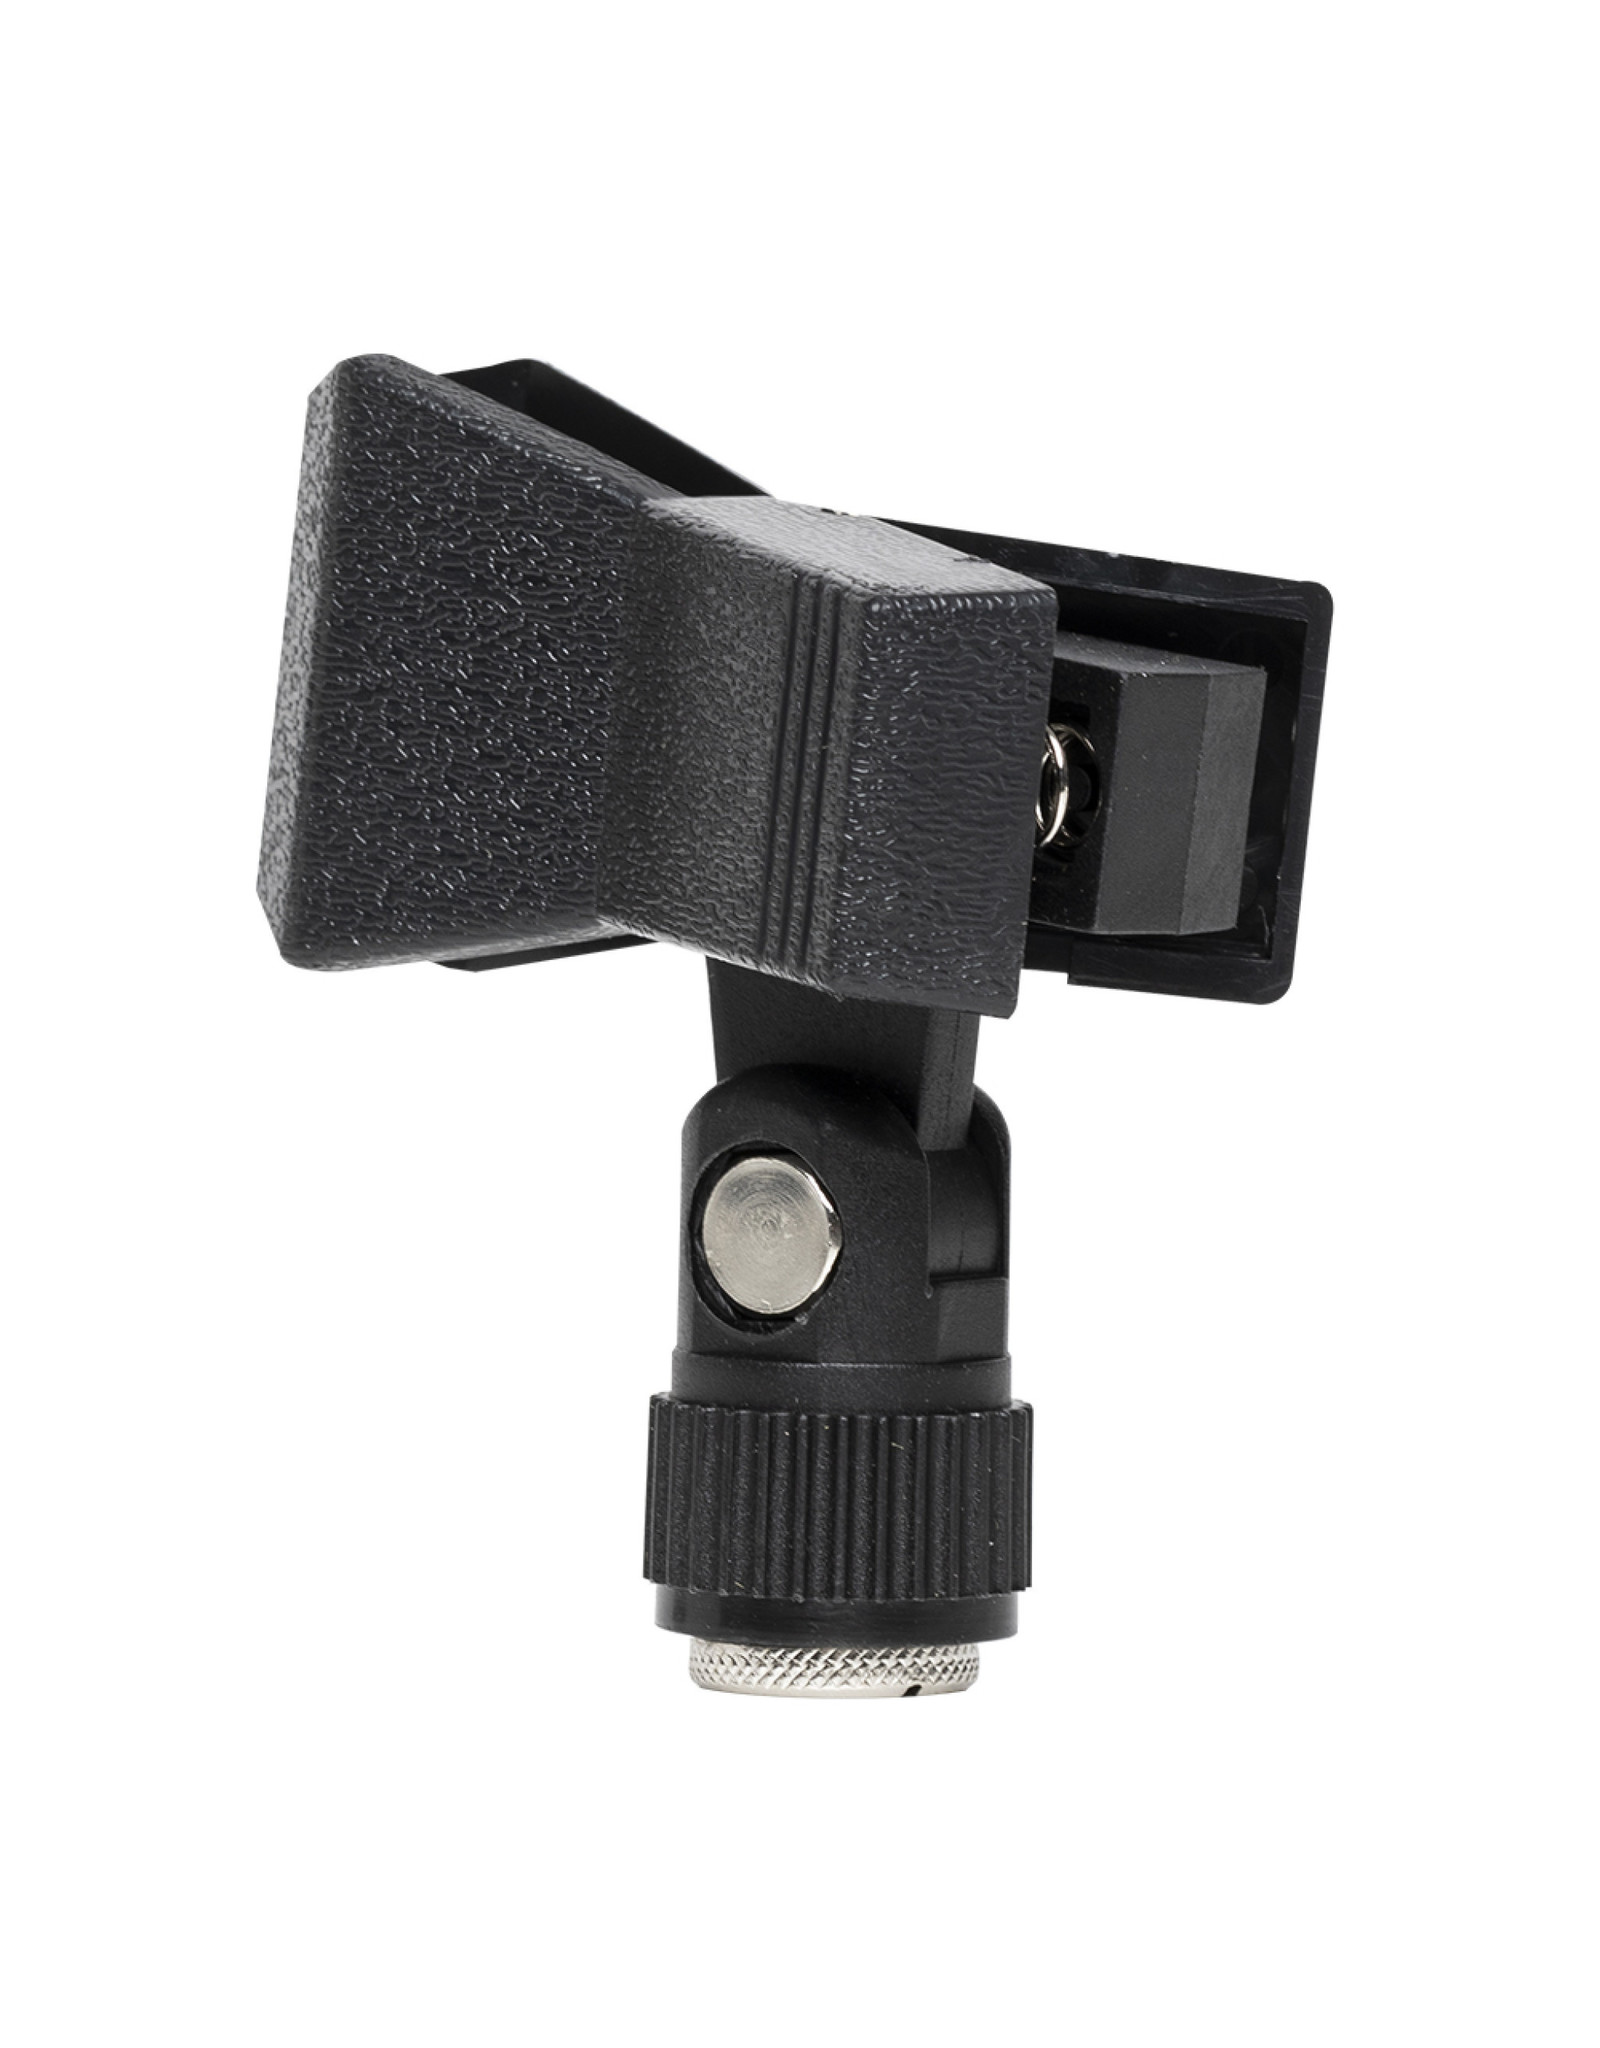 Stagg Stagg Spring Loaded Microphone Clip